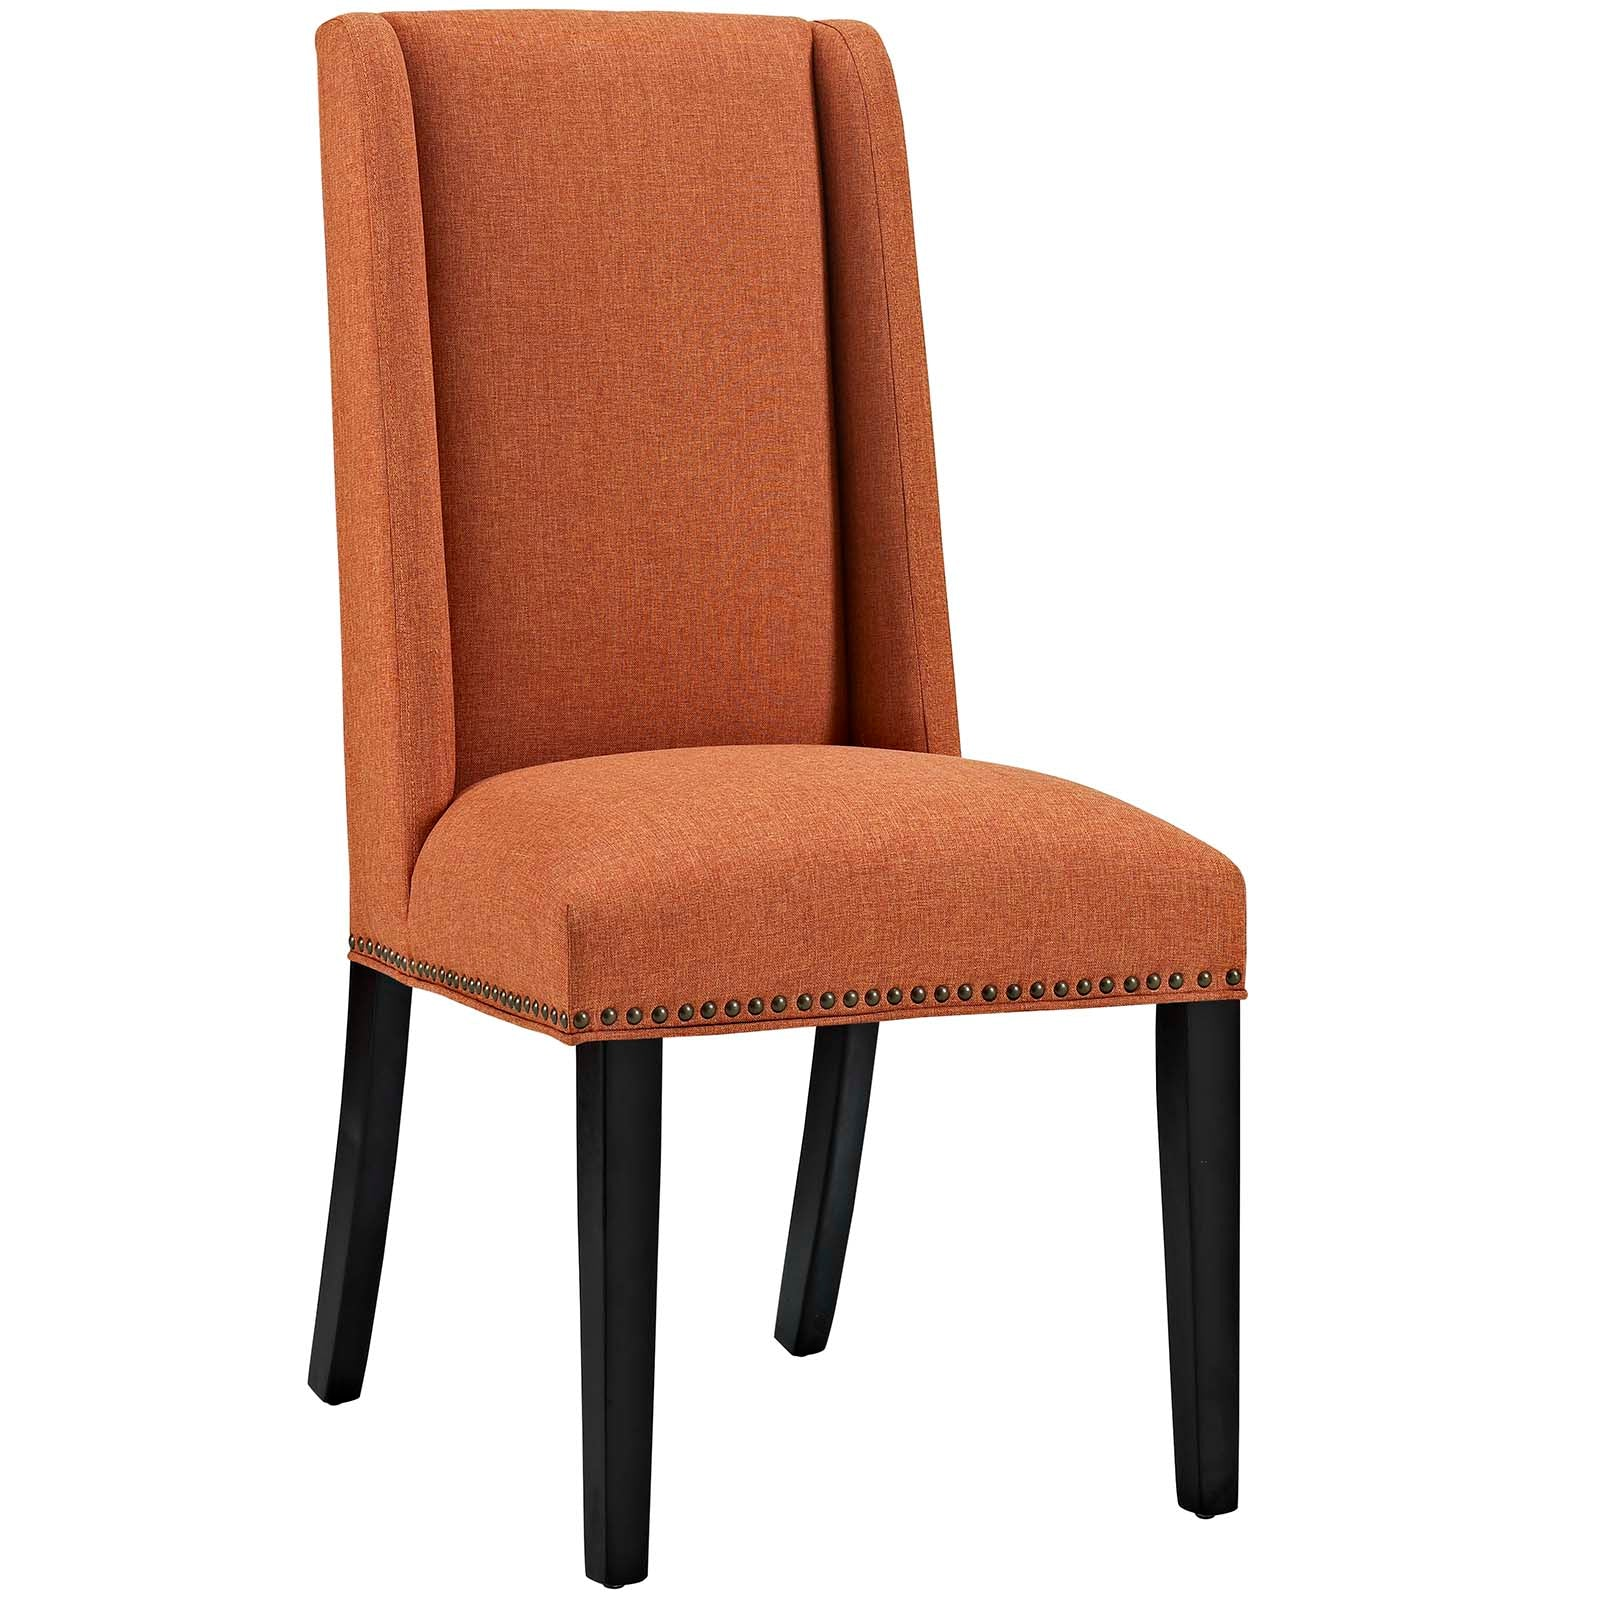 Baron fabric dining chair by modway eei ora